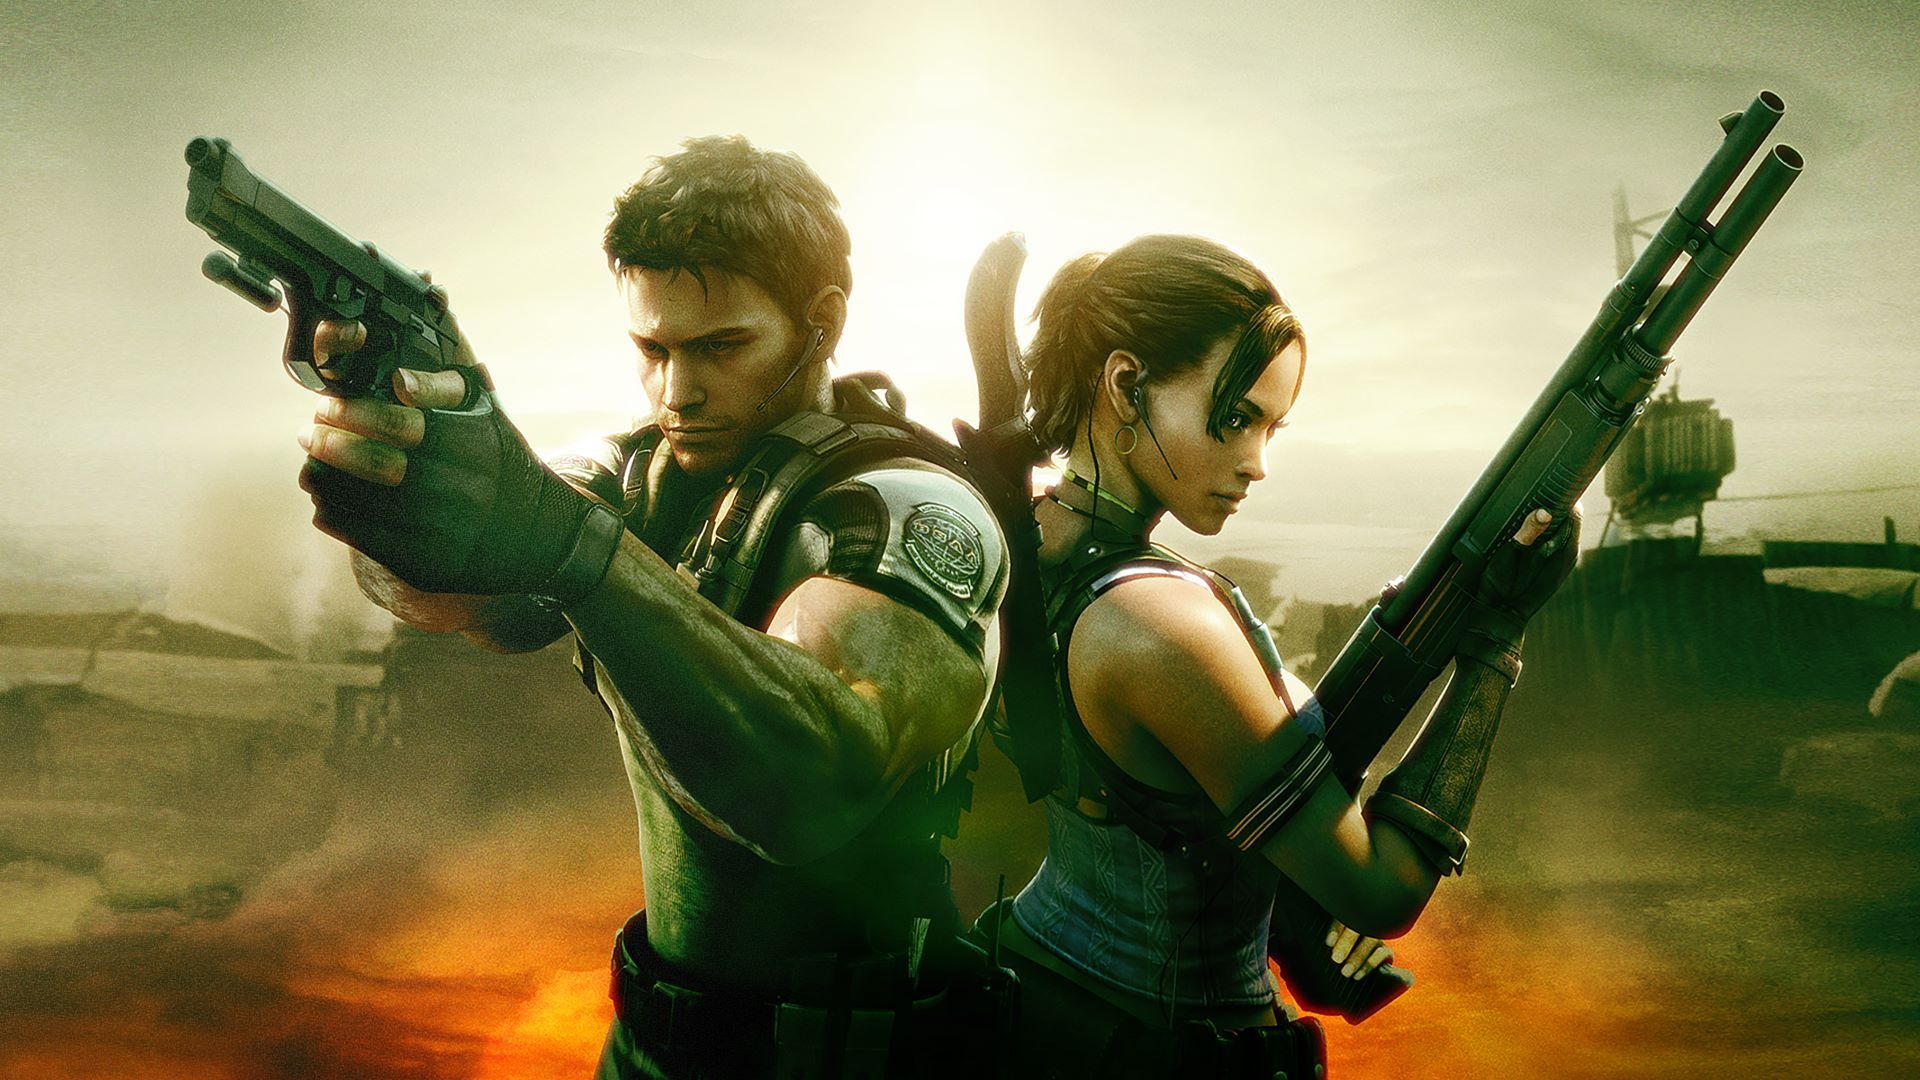 Resident Evil 5 And 6 Demos Available Now On Switch Resident Evil 5 Resident Evil Resident Evil Leon